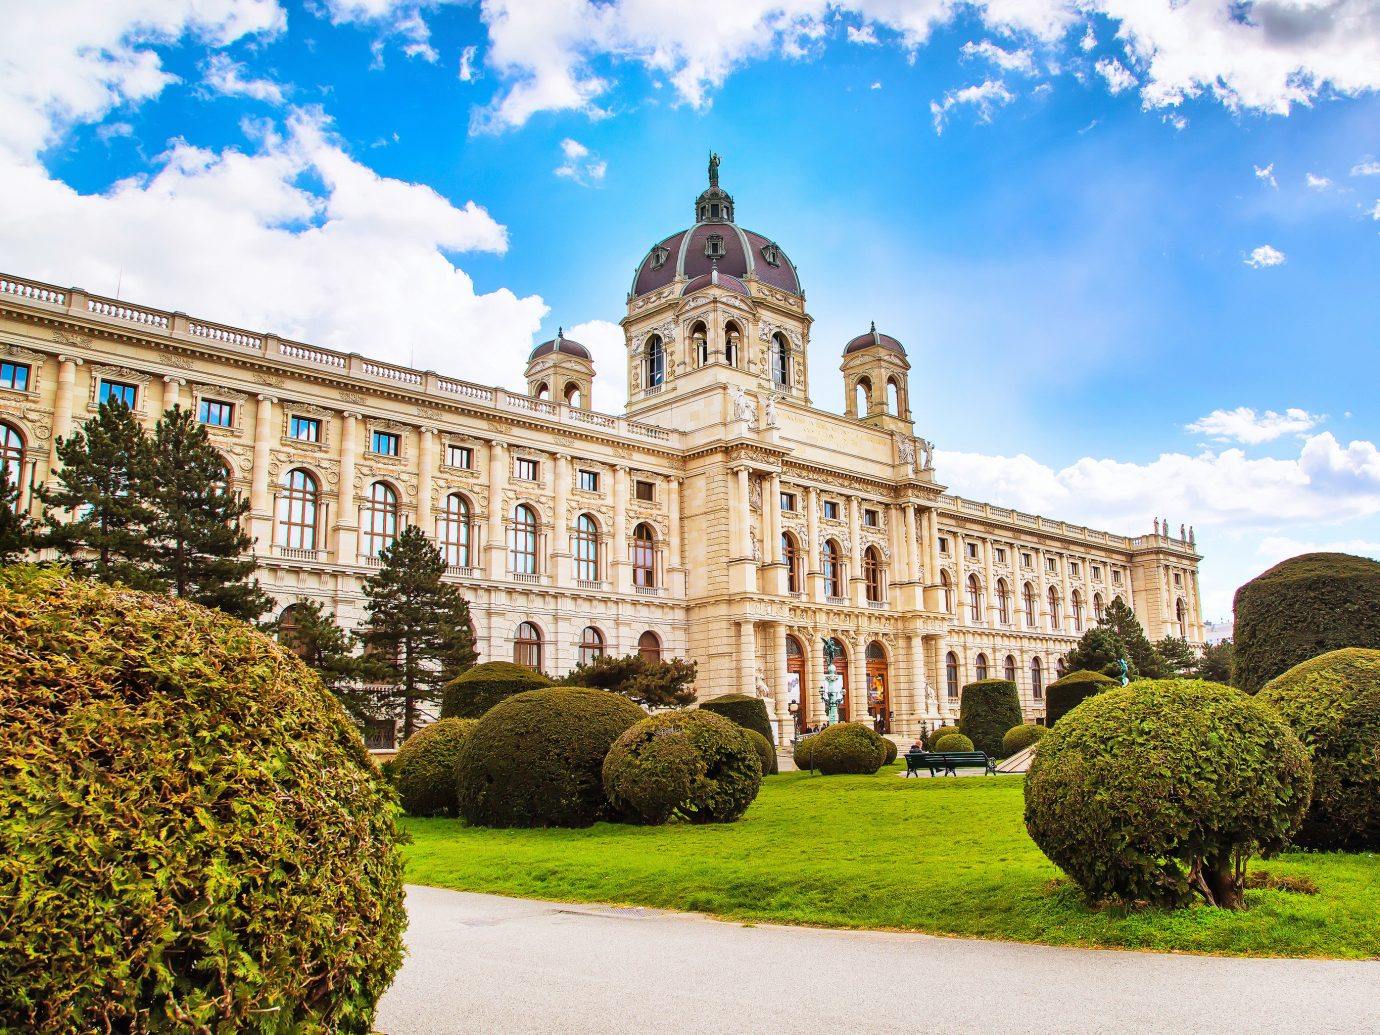 Outside of Kunsthistorisches Museum